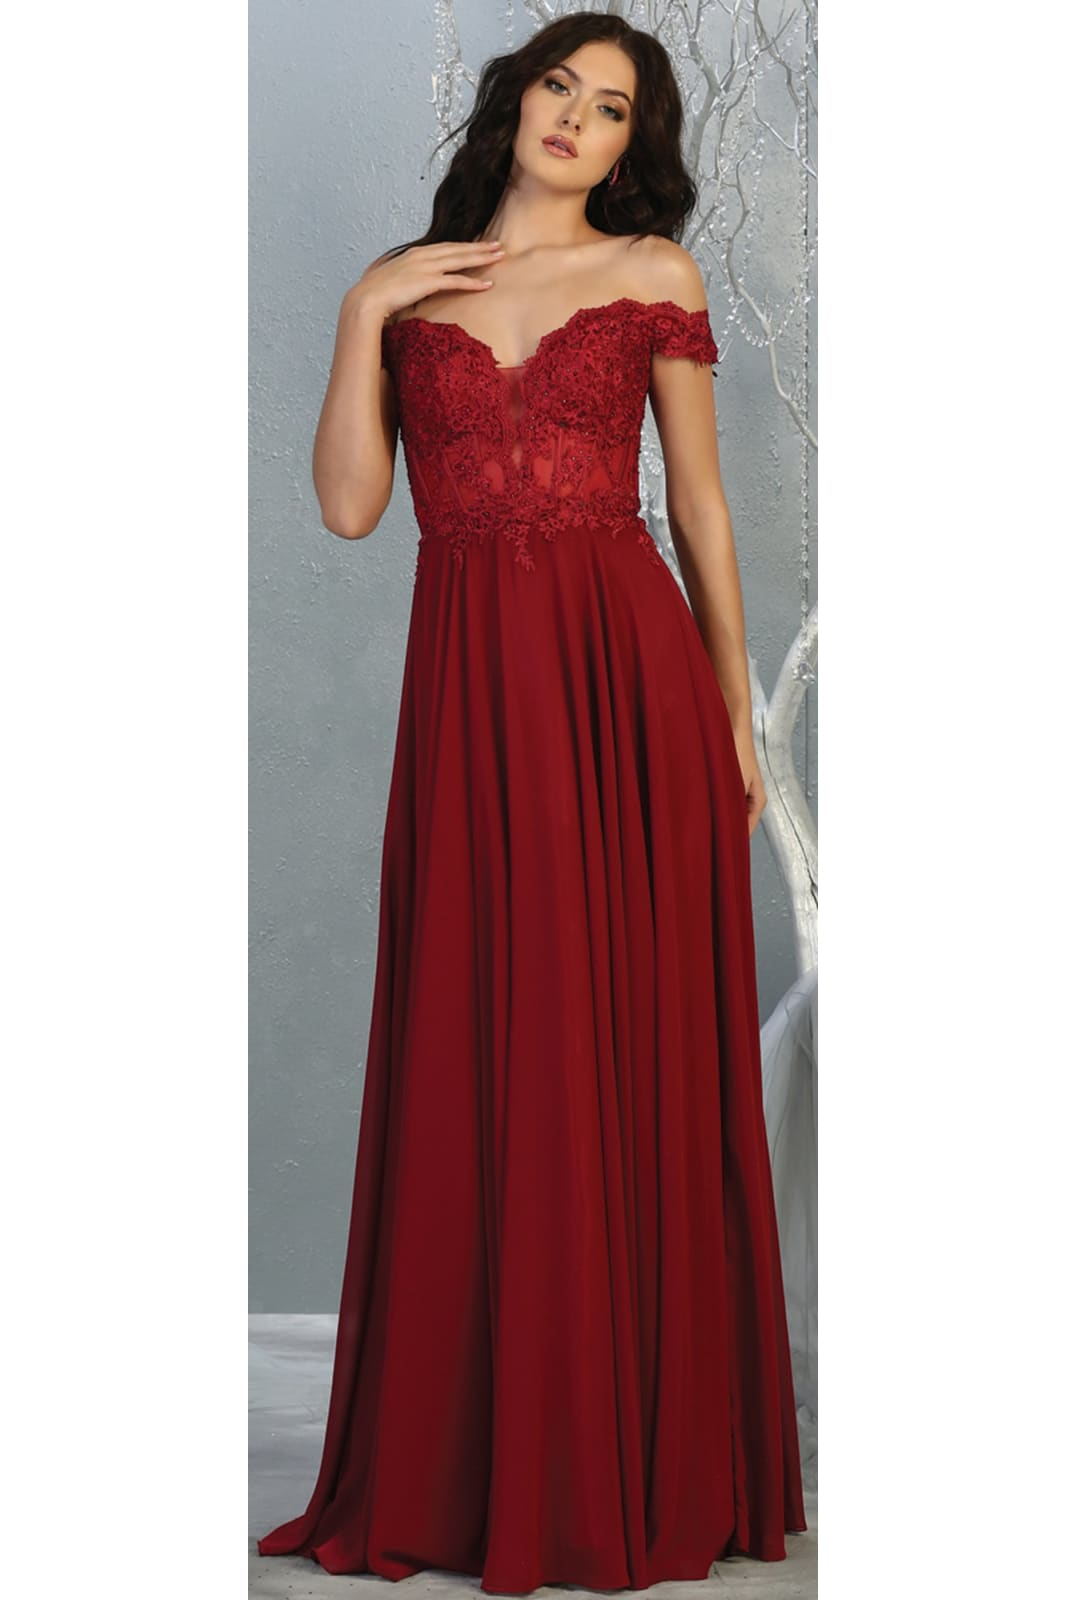 Sexy Off Shoulder Long Dress - LA1714 - BURGUNDY / 4